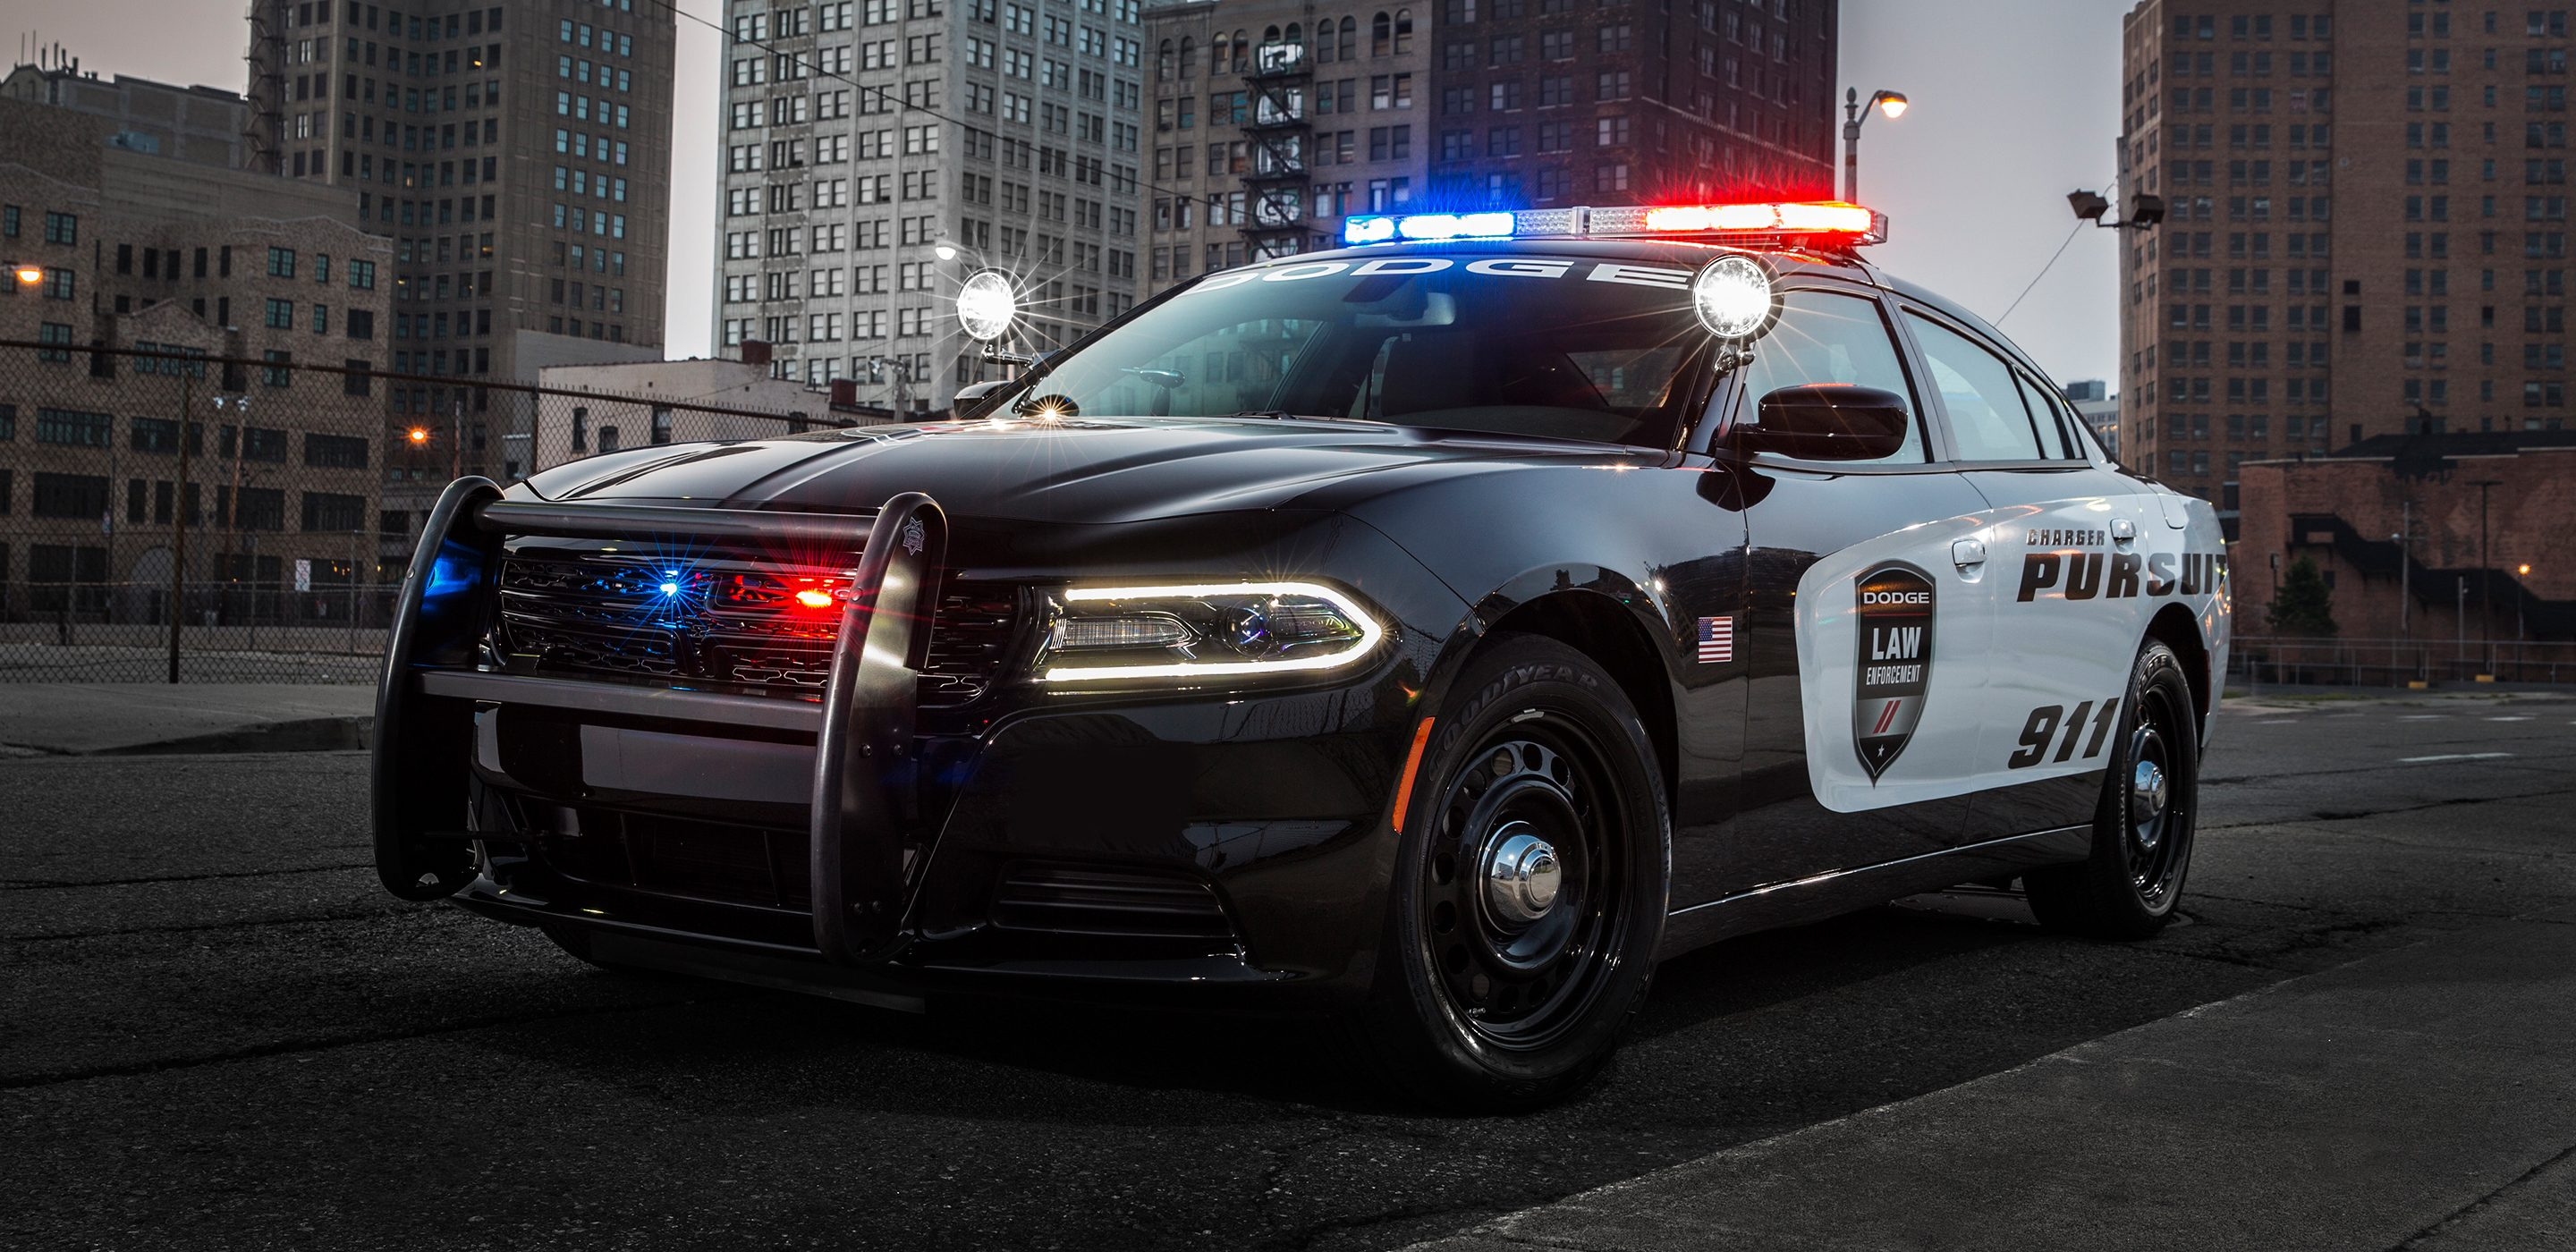 2018 Dodge Charger Police Pursuit John Jones Police Pursuit